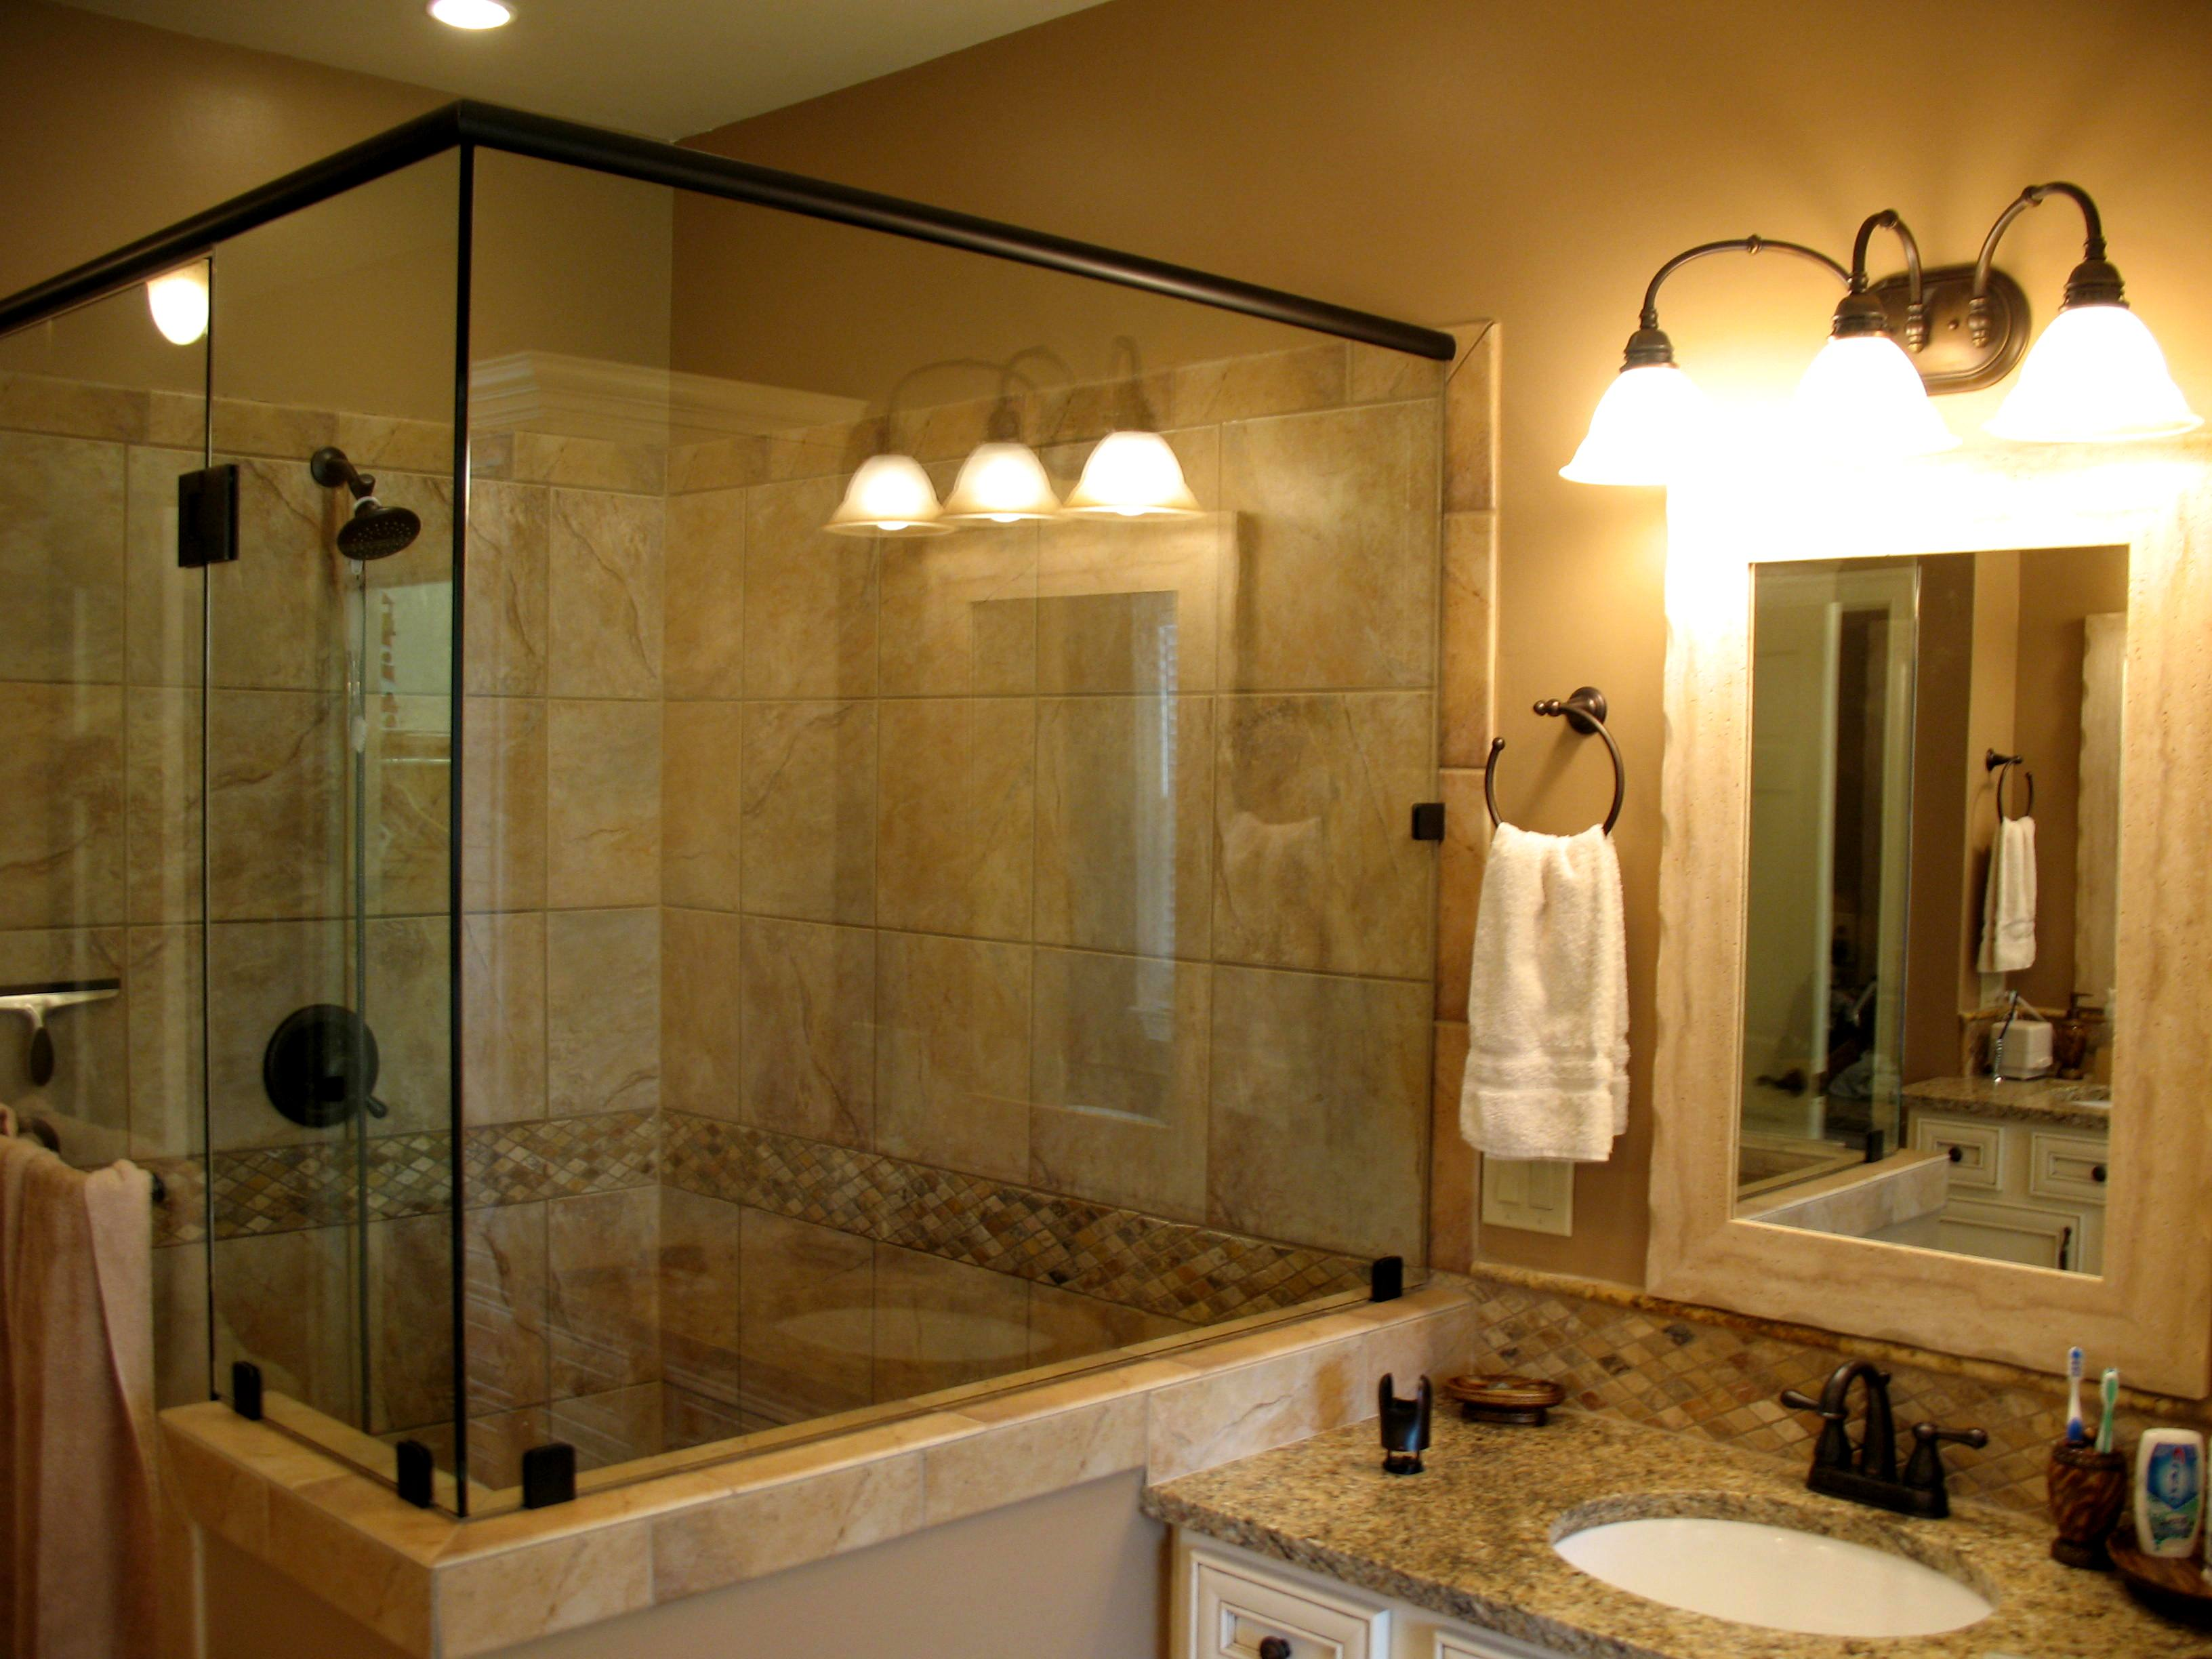 Remodel Small Bathroom Nice Bathroom Remodel Ideas With Bathroom - Bathroom renovations costs